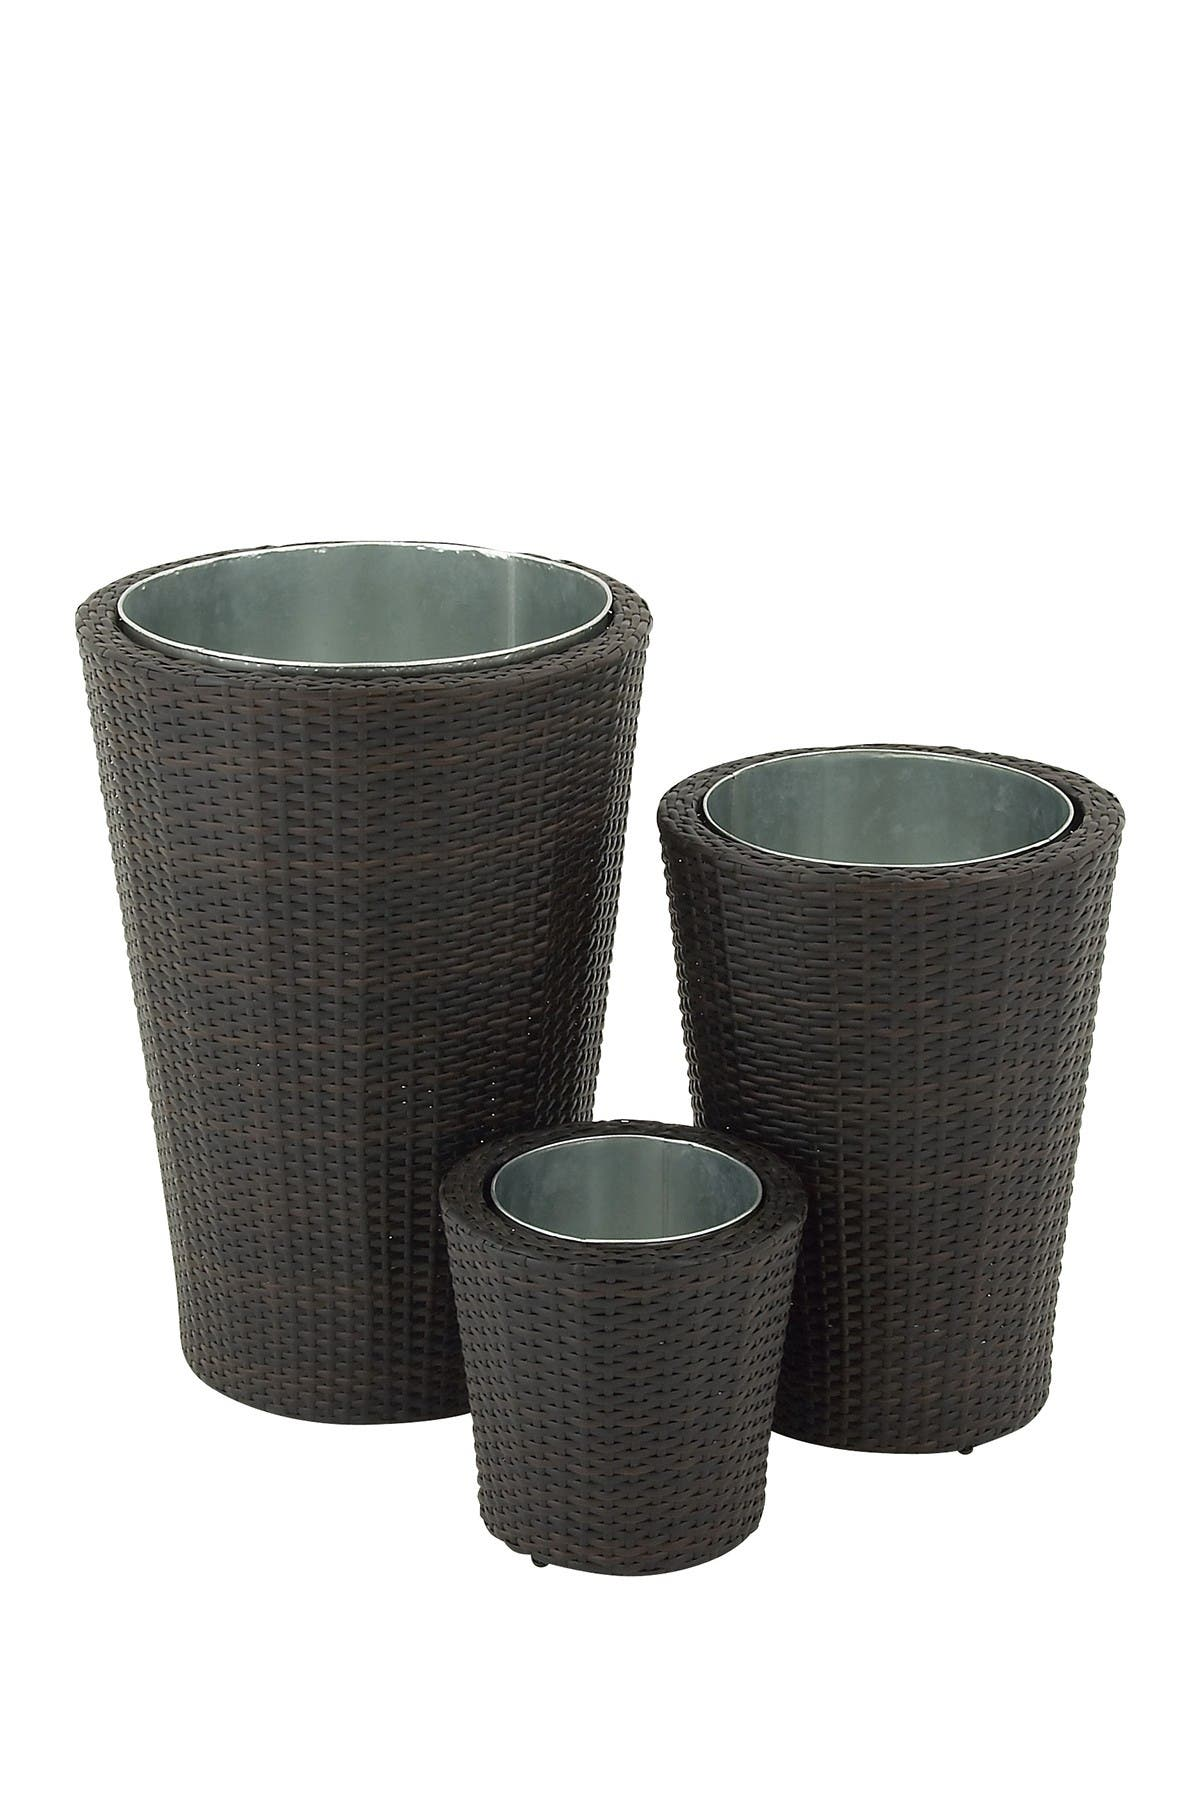 Image of Willow Row Black Contemporary Round Rattan Planter - Set of 3